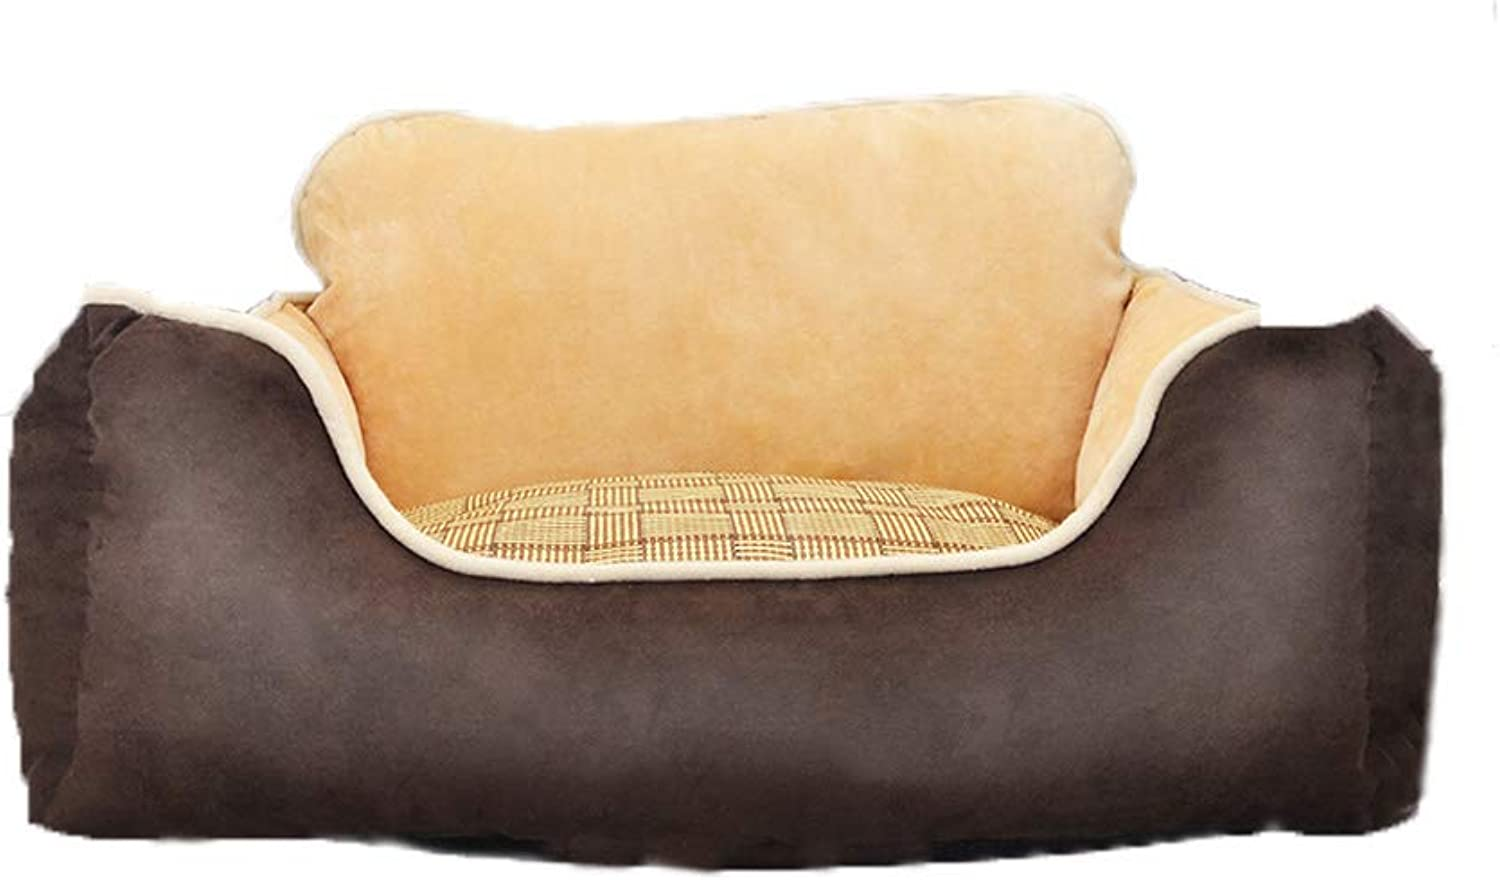 DQMSB Dog Bed, Cat Nest, Pet Supplies, SemiEnclosed Cat Litter, Kennel, Four Seasons pet Bed (color   Brown, Size   S)